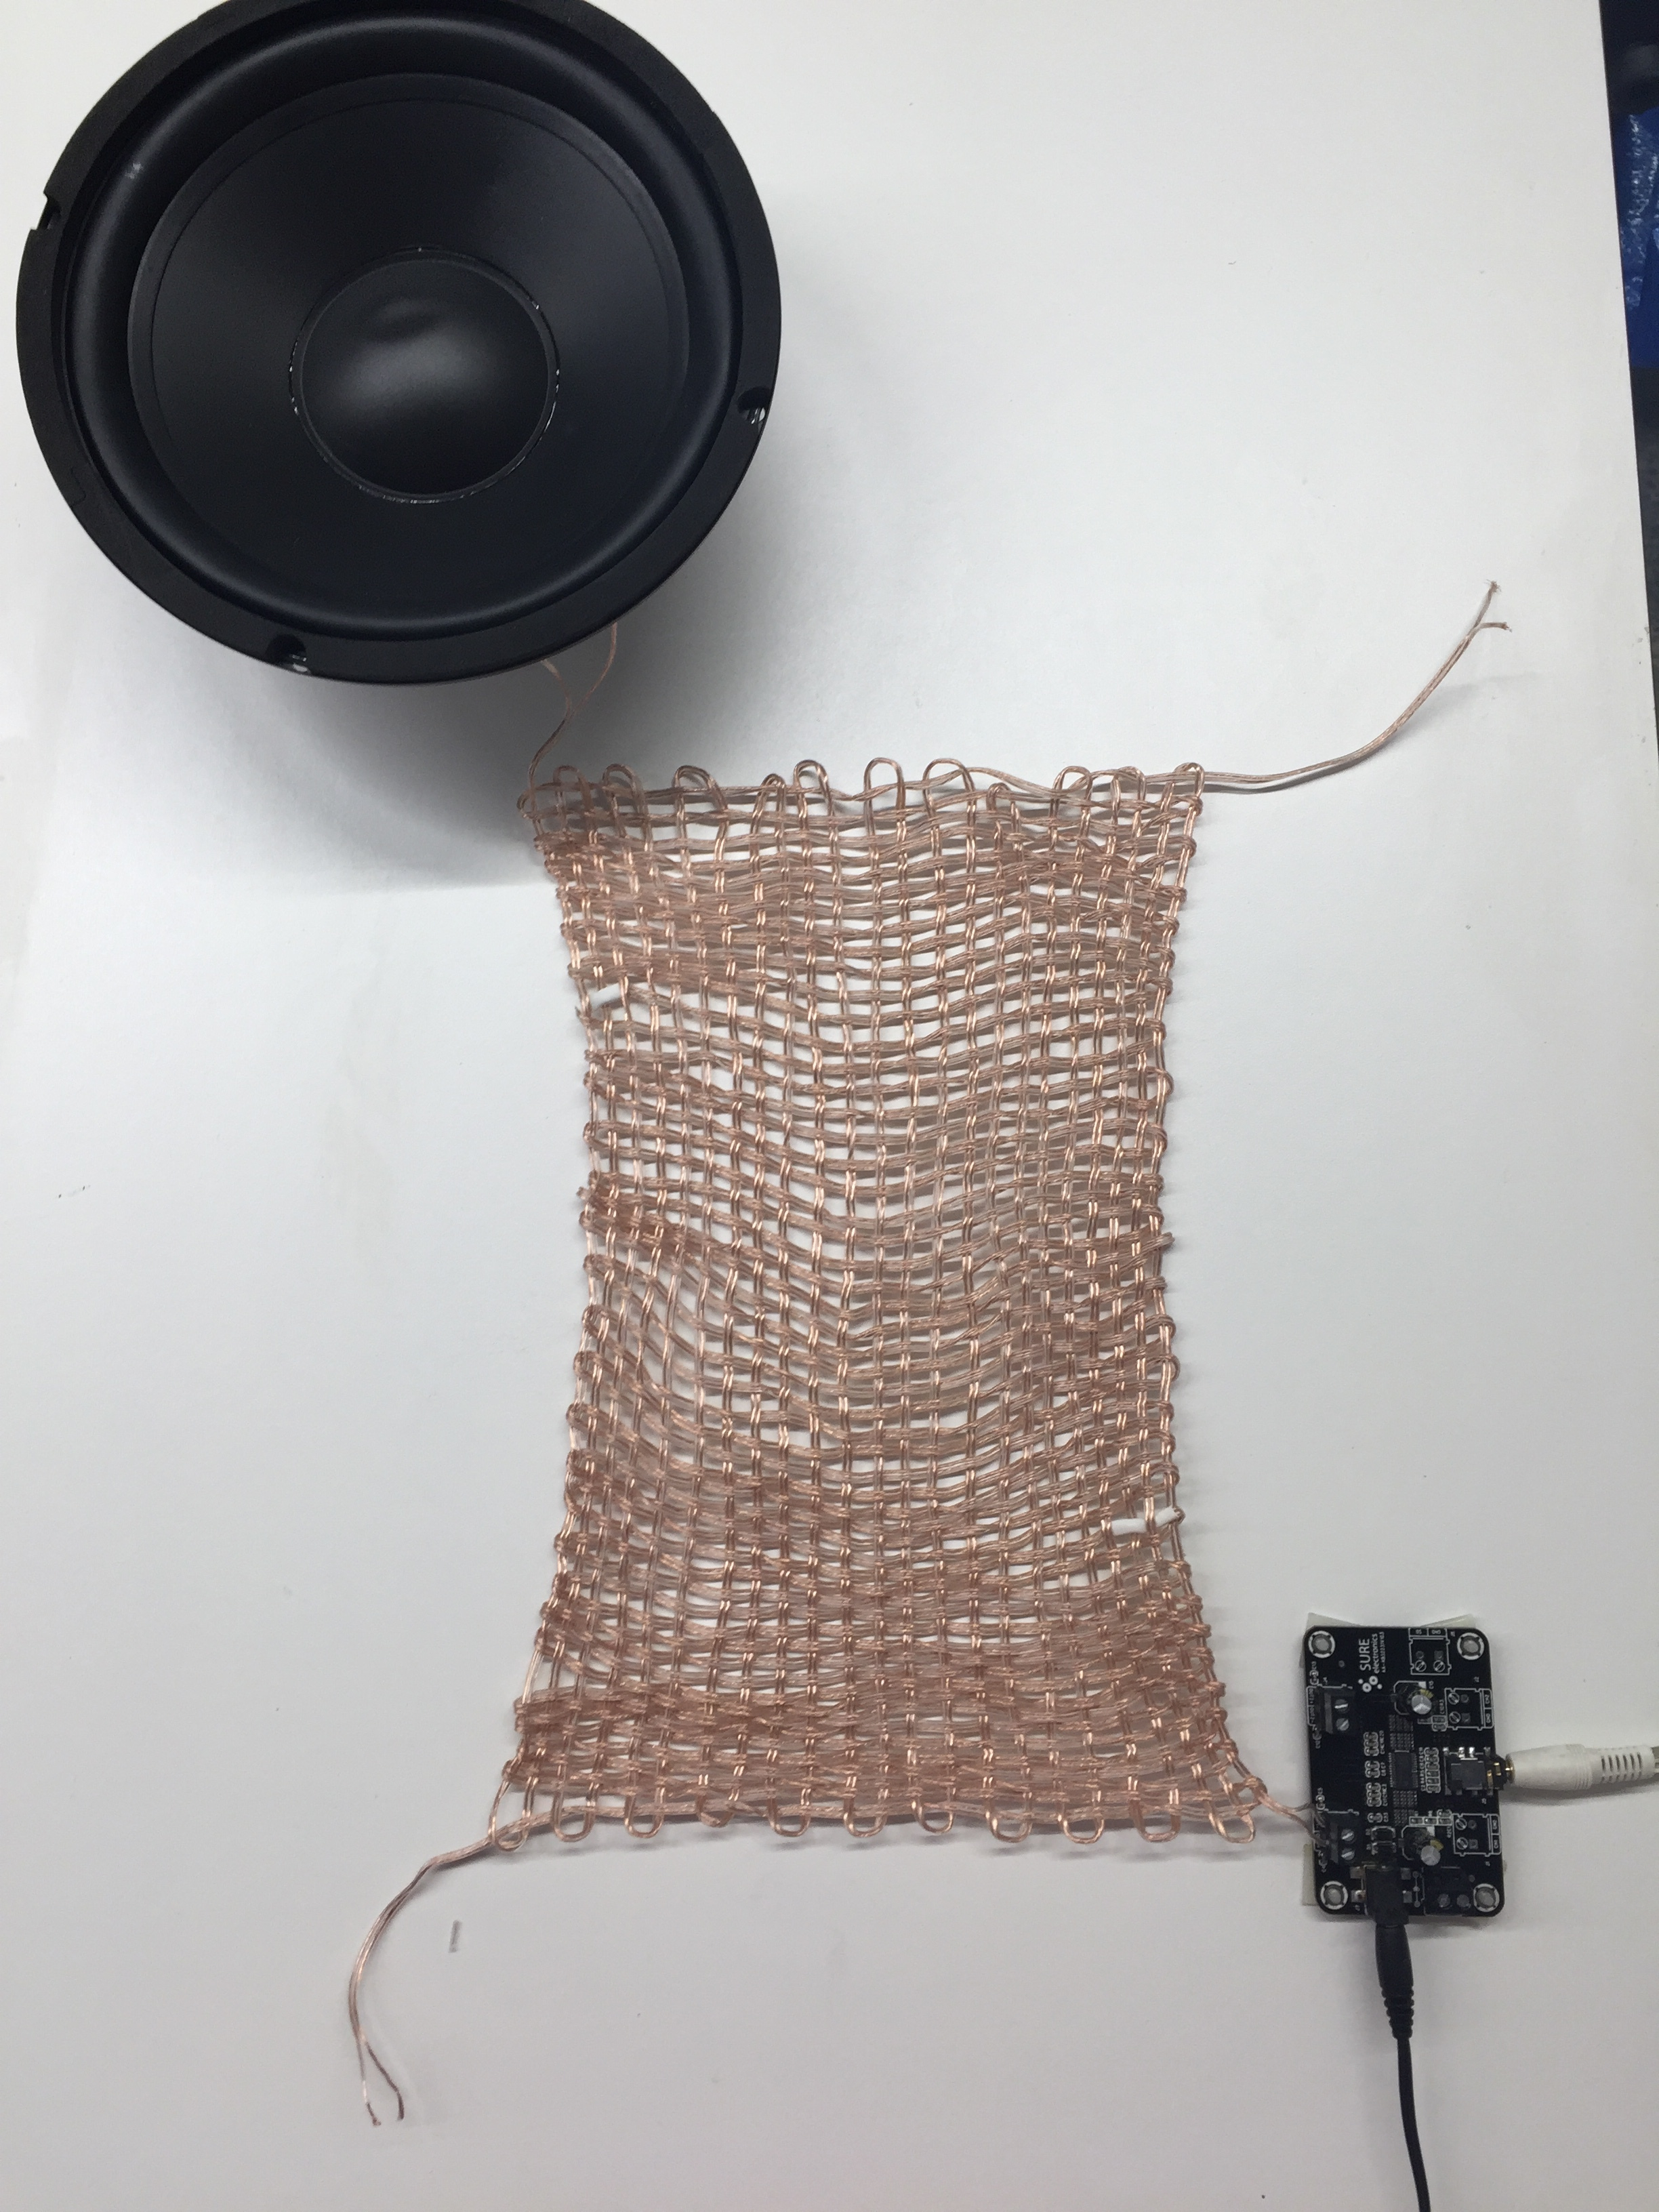 The amplifier is attached to one end of the warp, and the other end of the warp to the speaker. I could also connect the weft ends to their own speaker/amplifier pair.